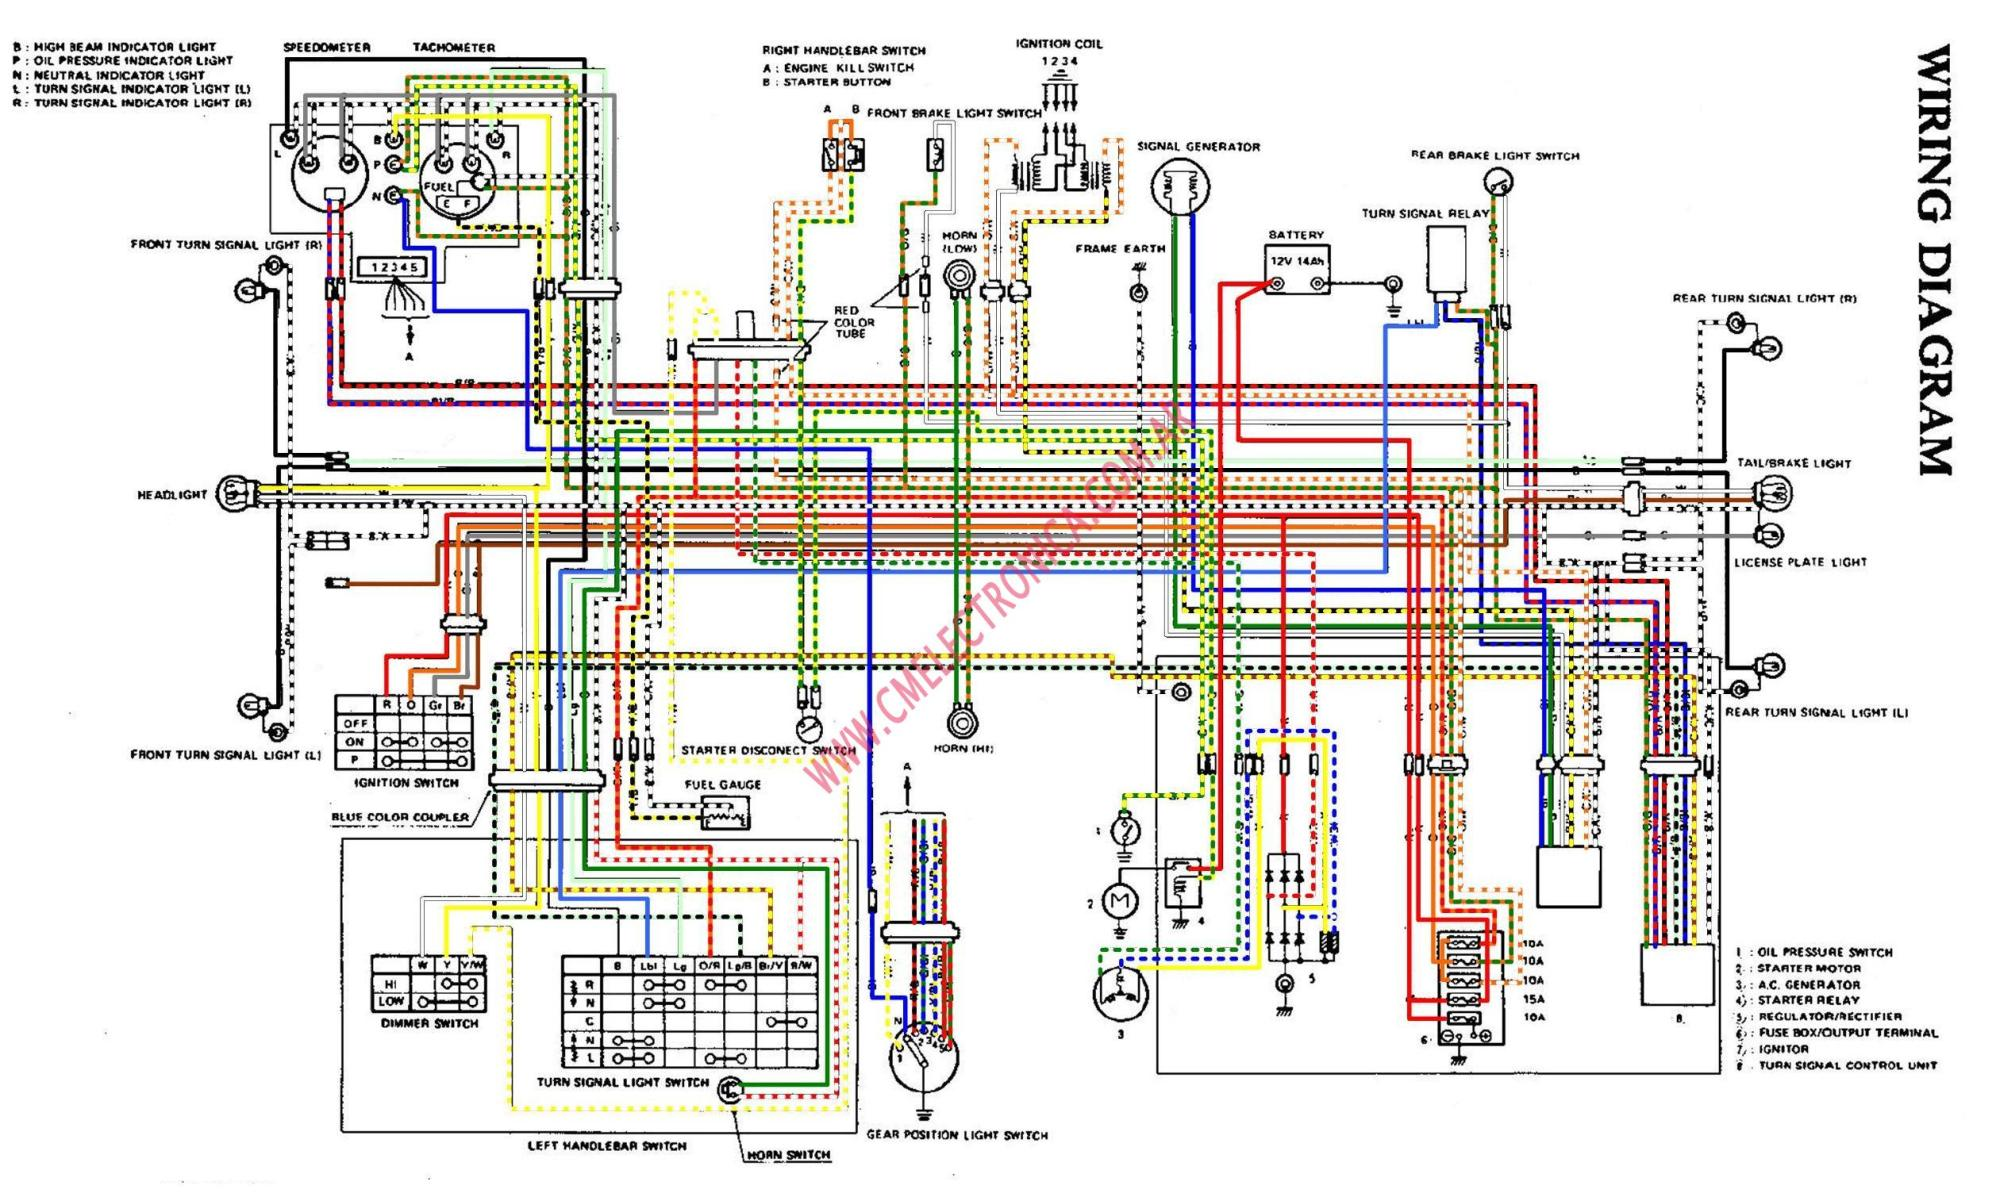 hight resolution of gs750 wiring diagram wiring diagram gs750 wiring diagram gs750 wiring diagram